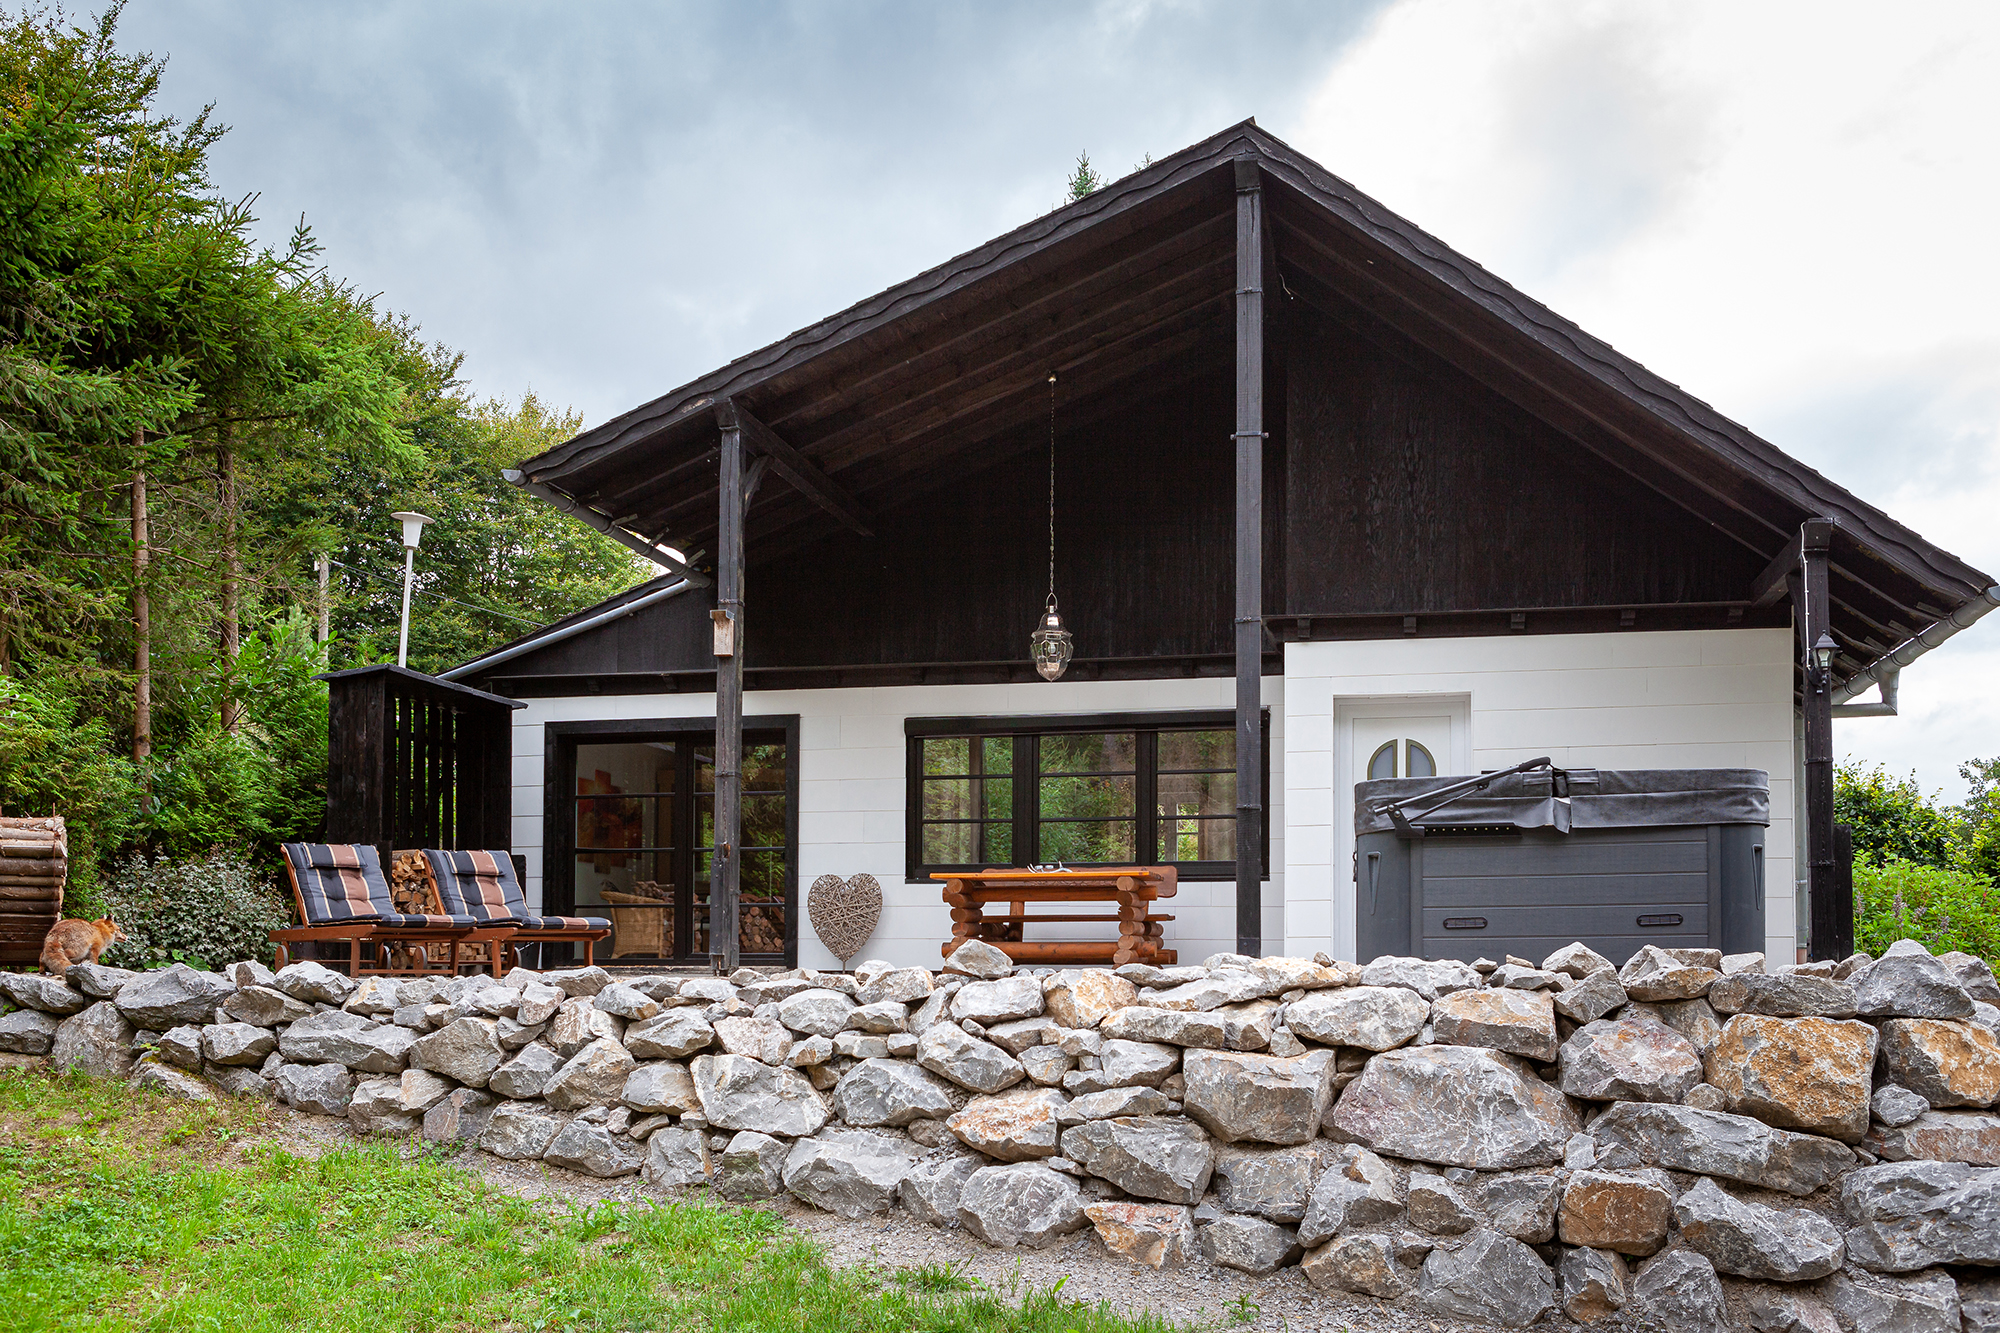 Photo of Forest Chalet one of the best airbnbs in germany